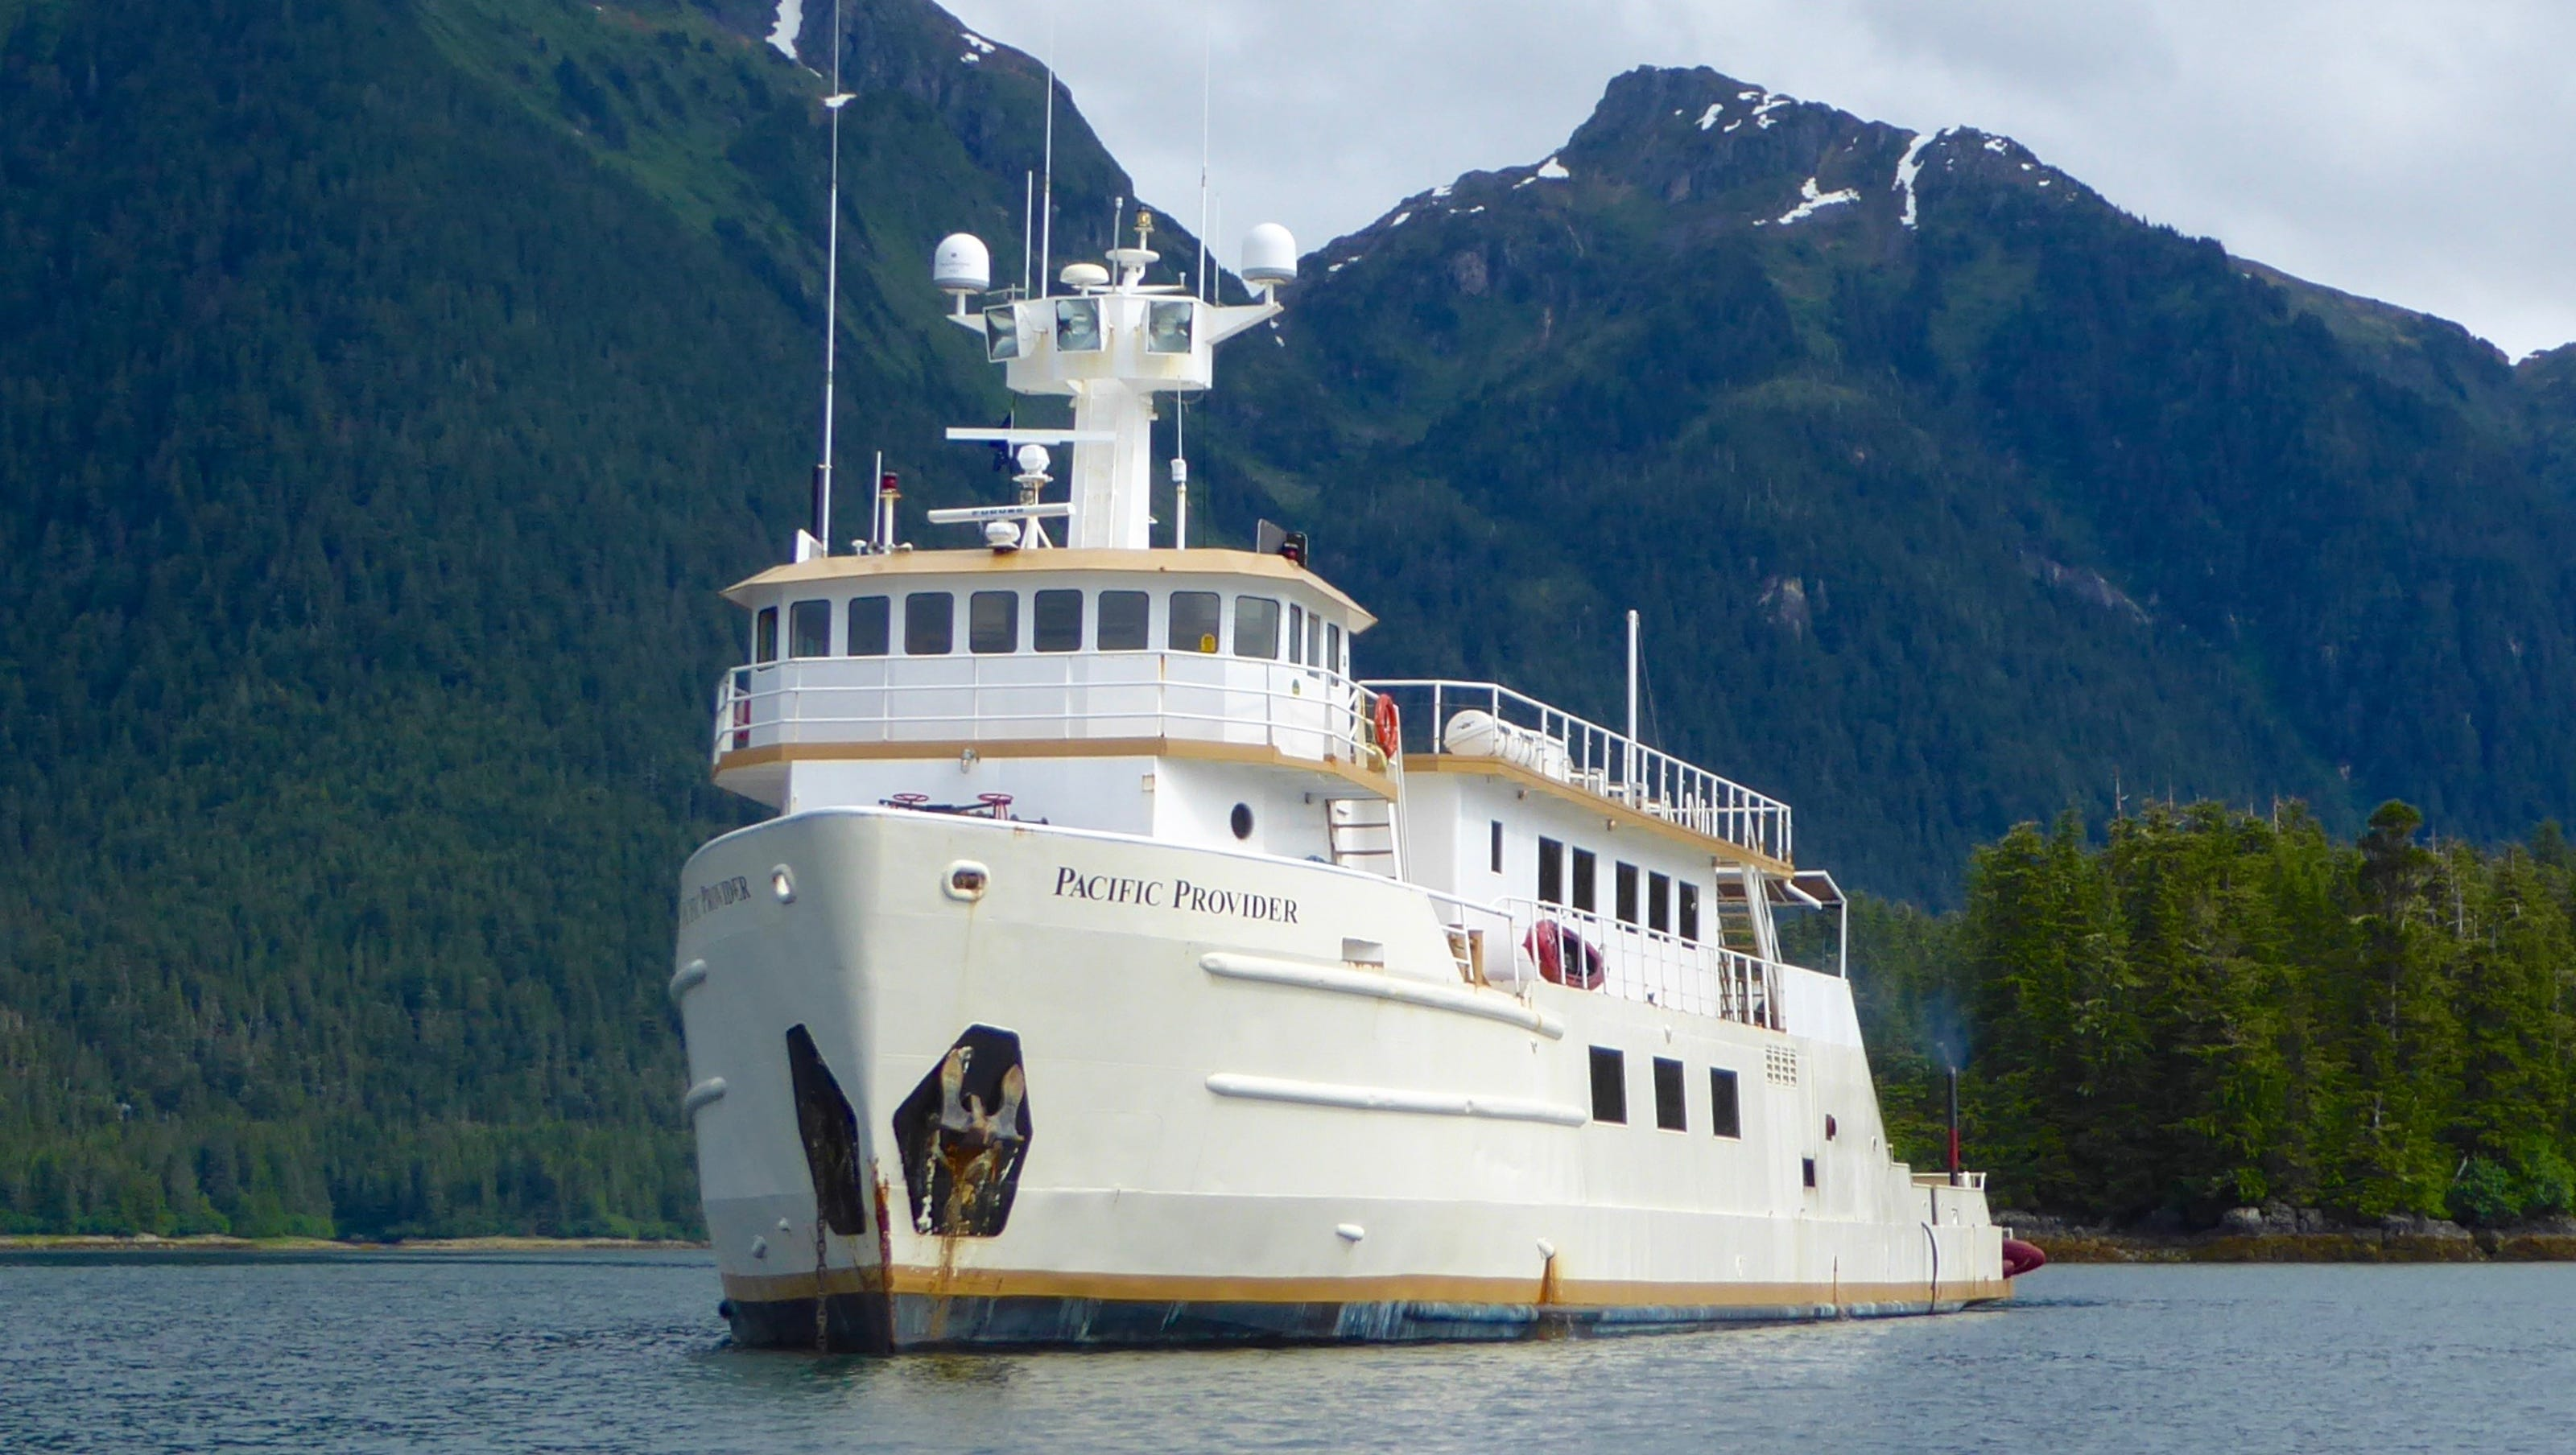 Photo tour: Inside Pacific Provider, one of the world's smallest cruise vessels (usatoday.com)